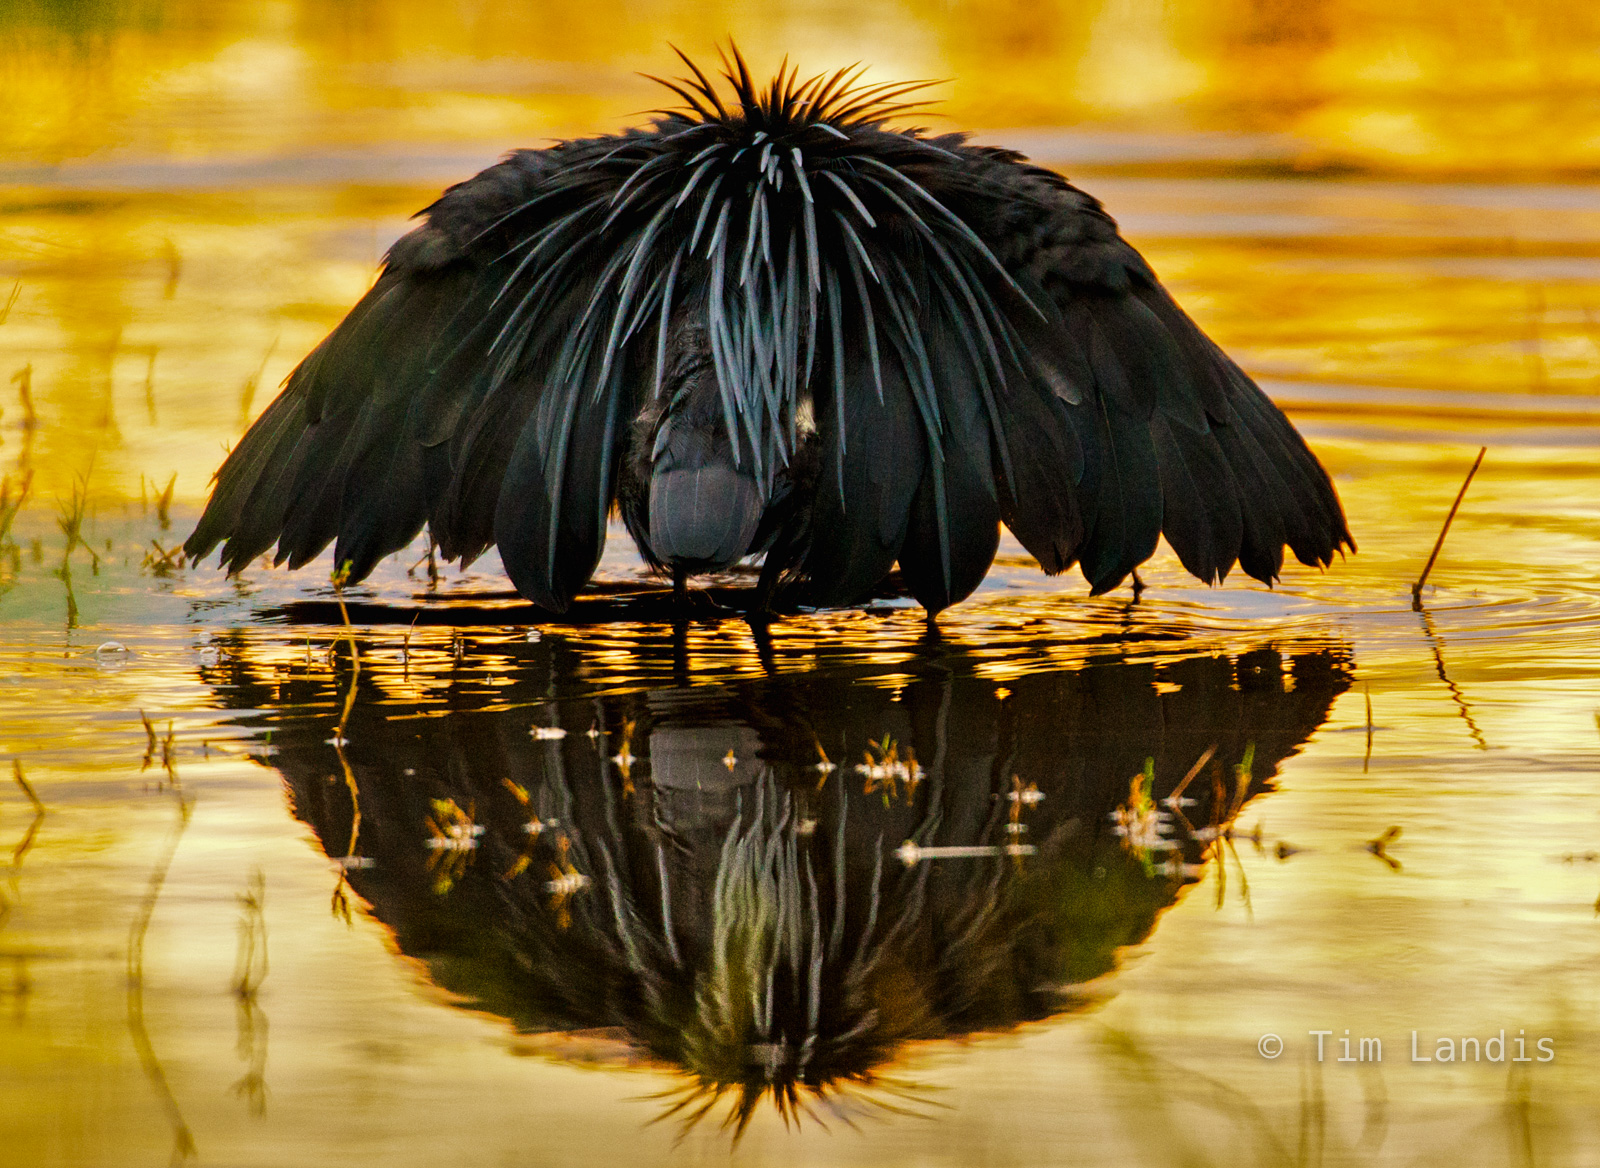 Canopy feeder, the black heron, rushes through the shallows, pops into the shape of a black umbrella which freezes the fish...